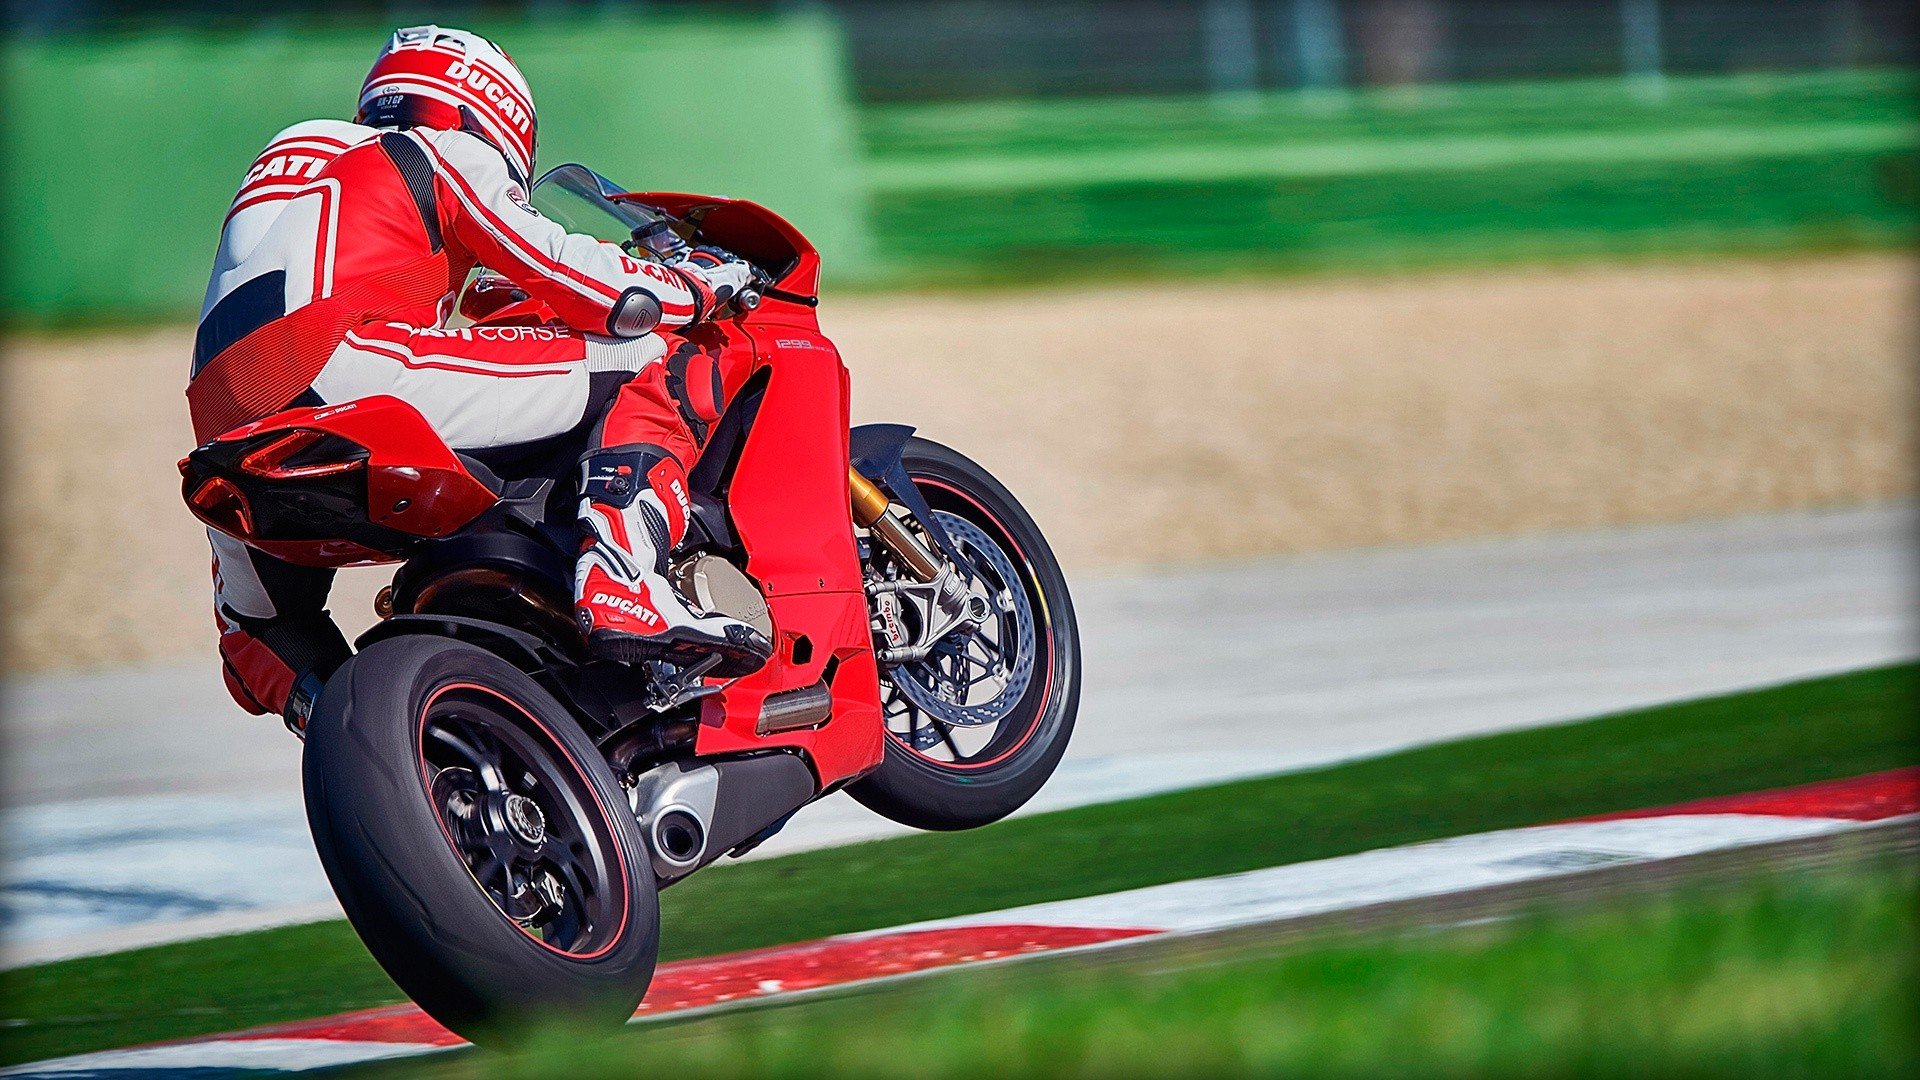 Ducati 1299 Panigale S 4k Wallpapers: DUCATI Panigale 1299 S Specs